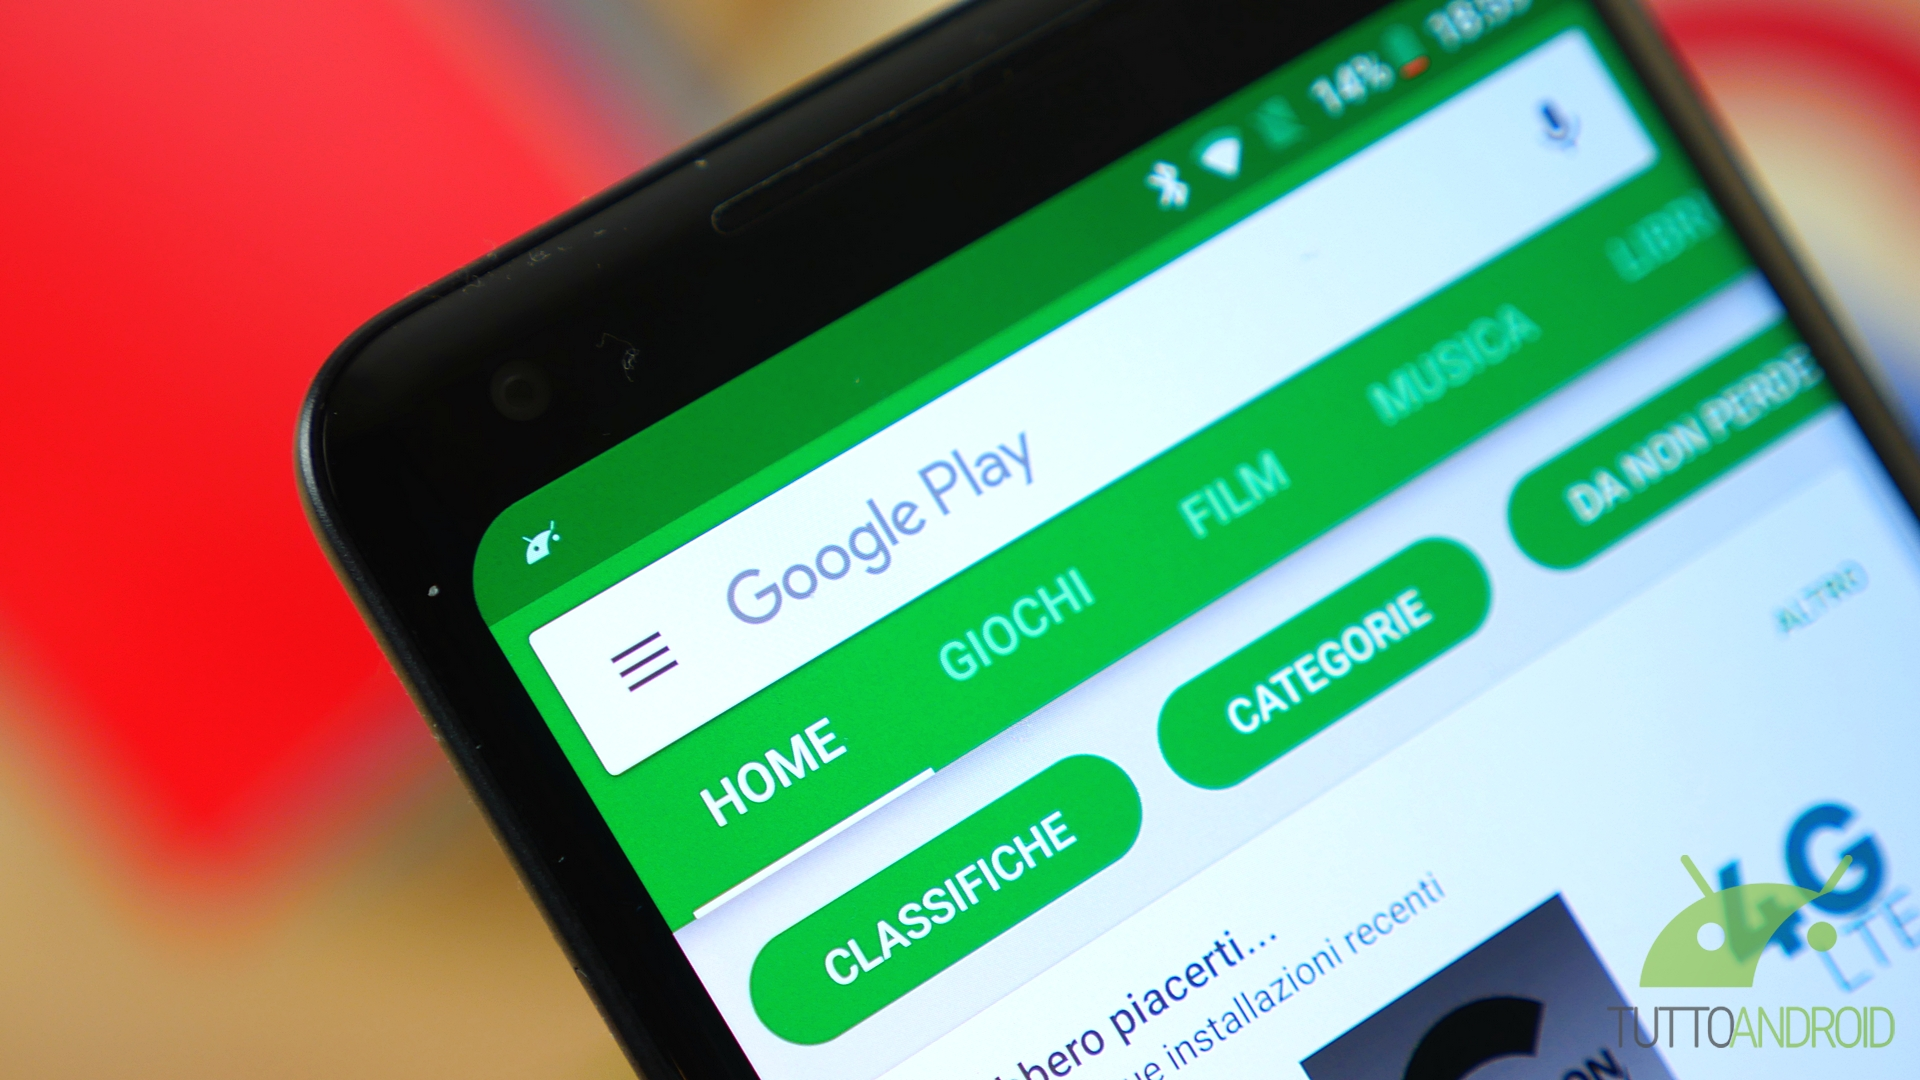 I download sequenziali sul Play Store di Google hanno le ore